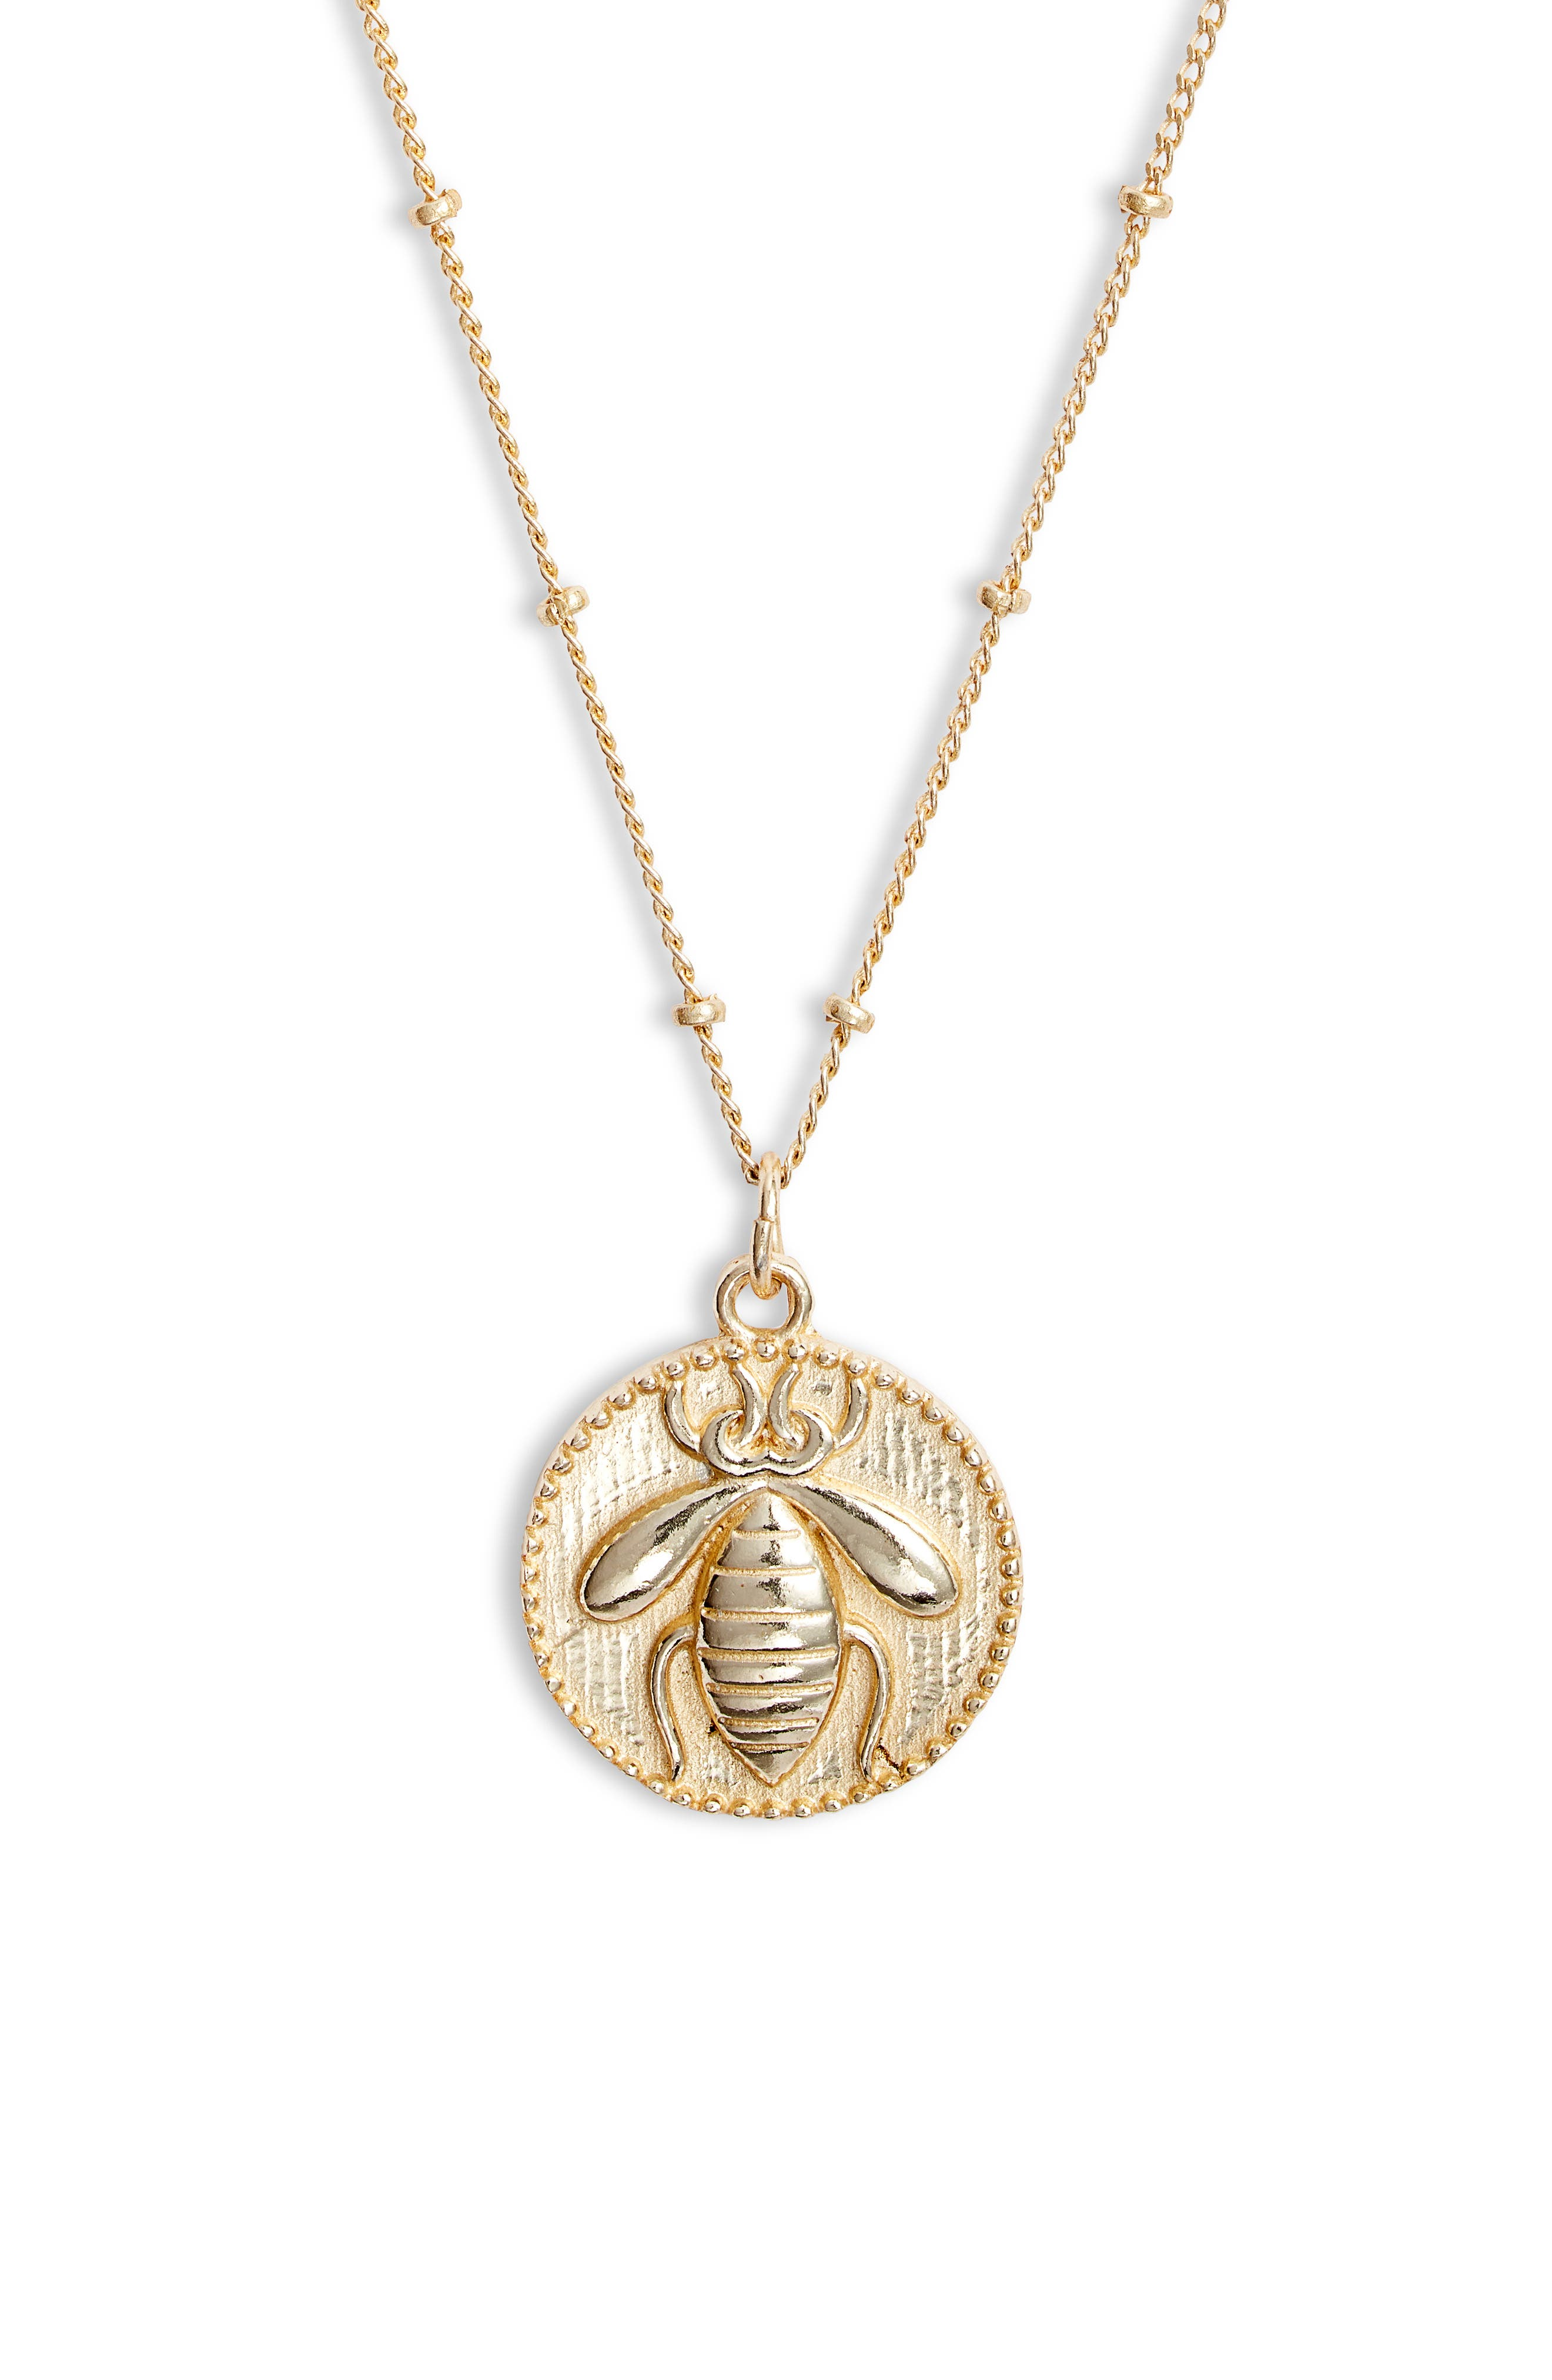 Collections by Joya Sterling Silver Bee Pendant Necklace in Gold at Nordstrom